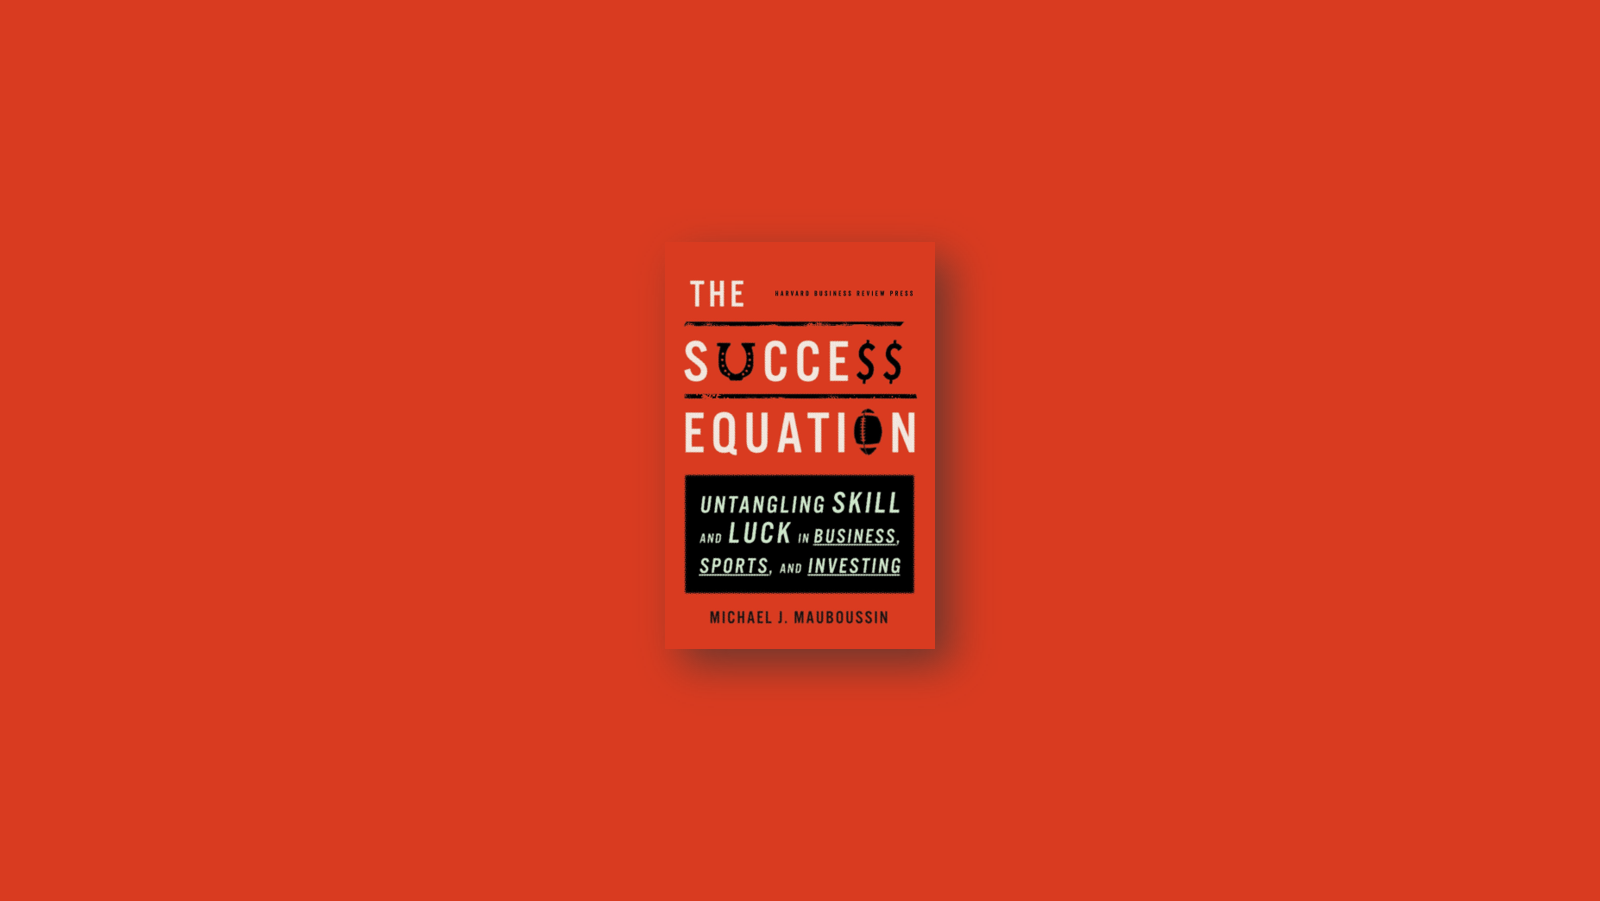 Summary: The Success Equation By Michael Mauboussin